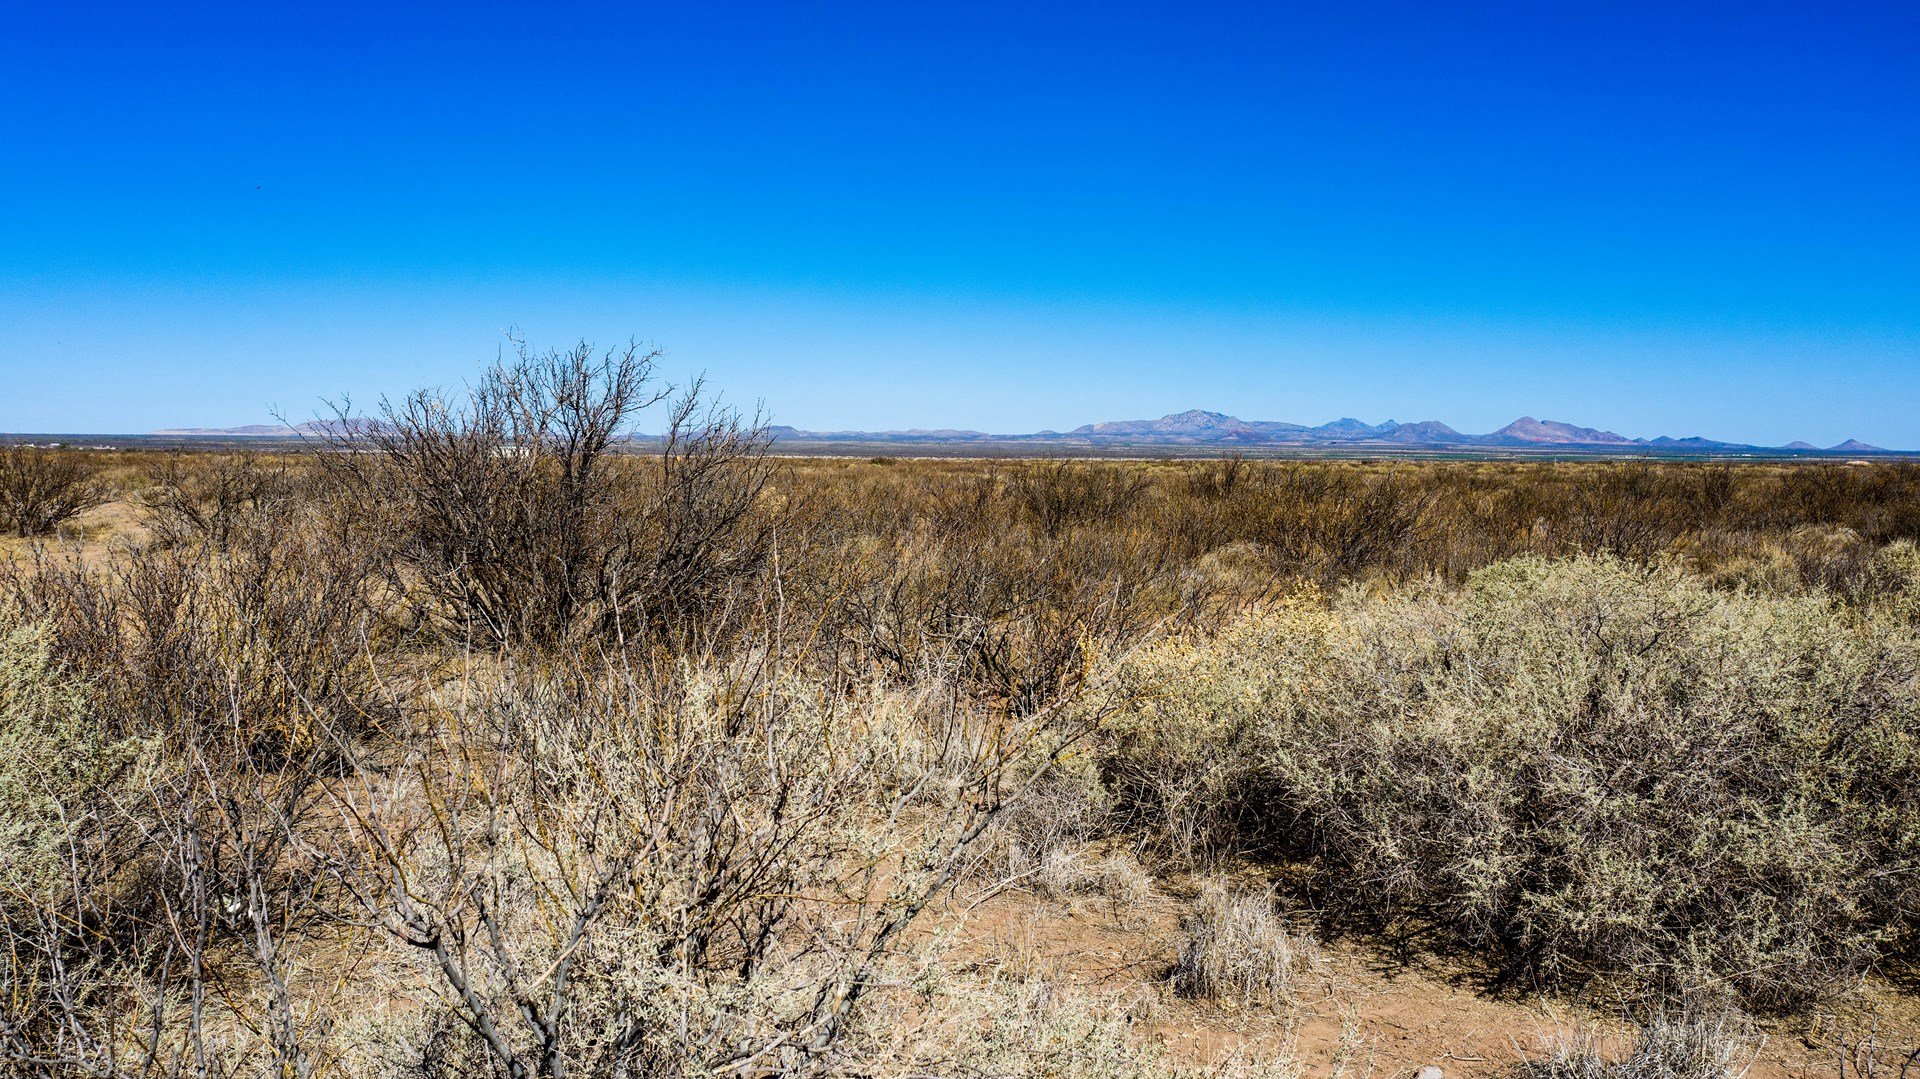 40 acres consisting of 2 lots